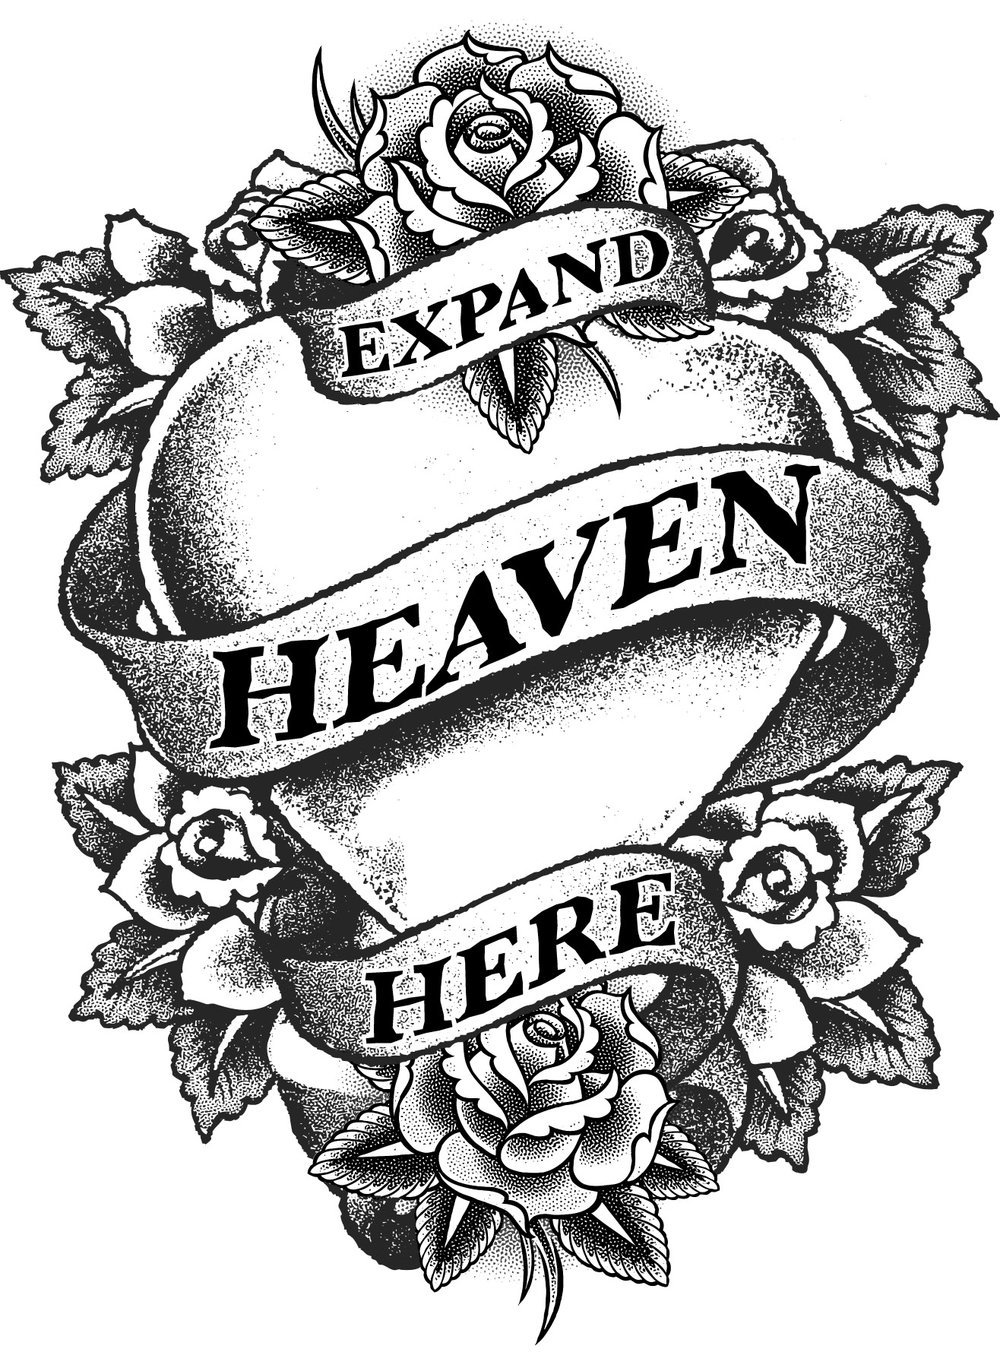 Expand Heaven Heart and Roses.jpg